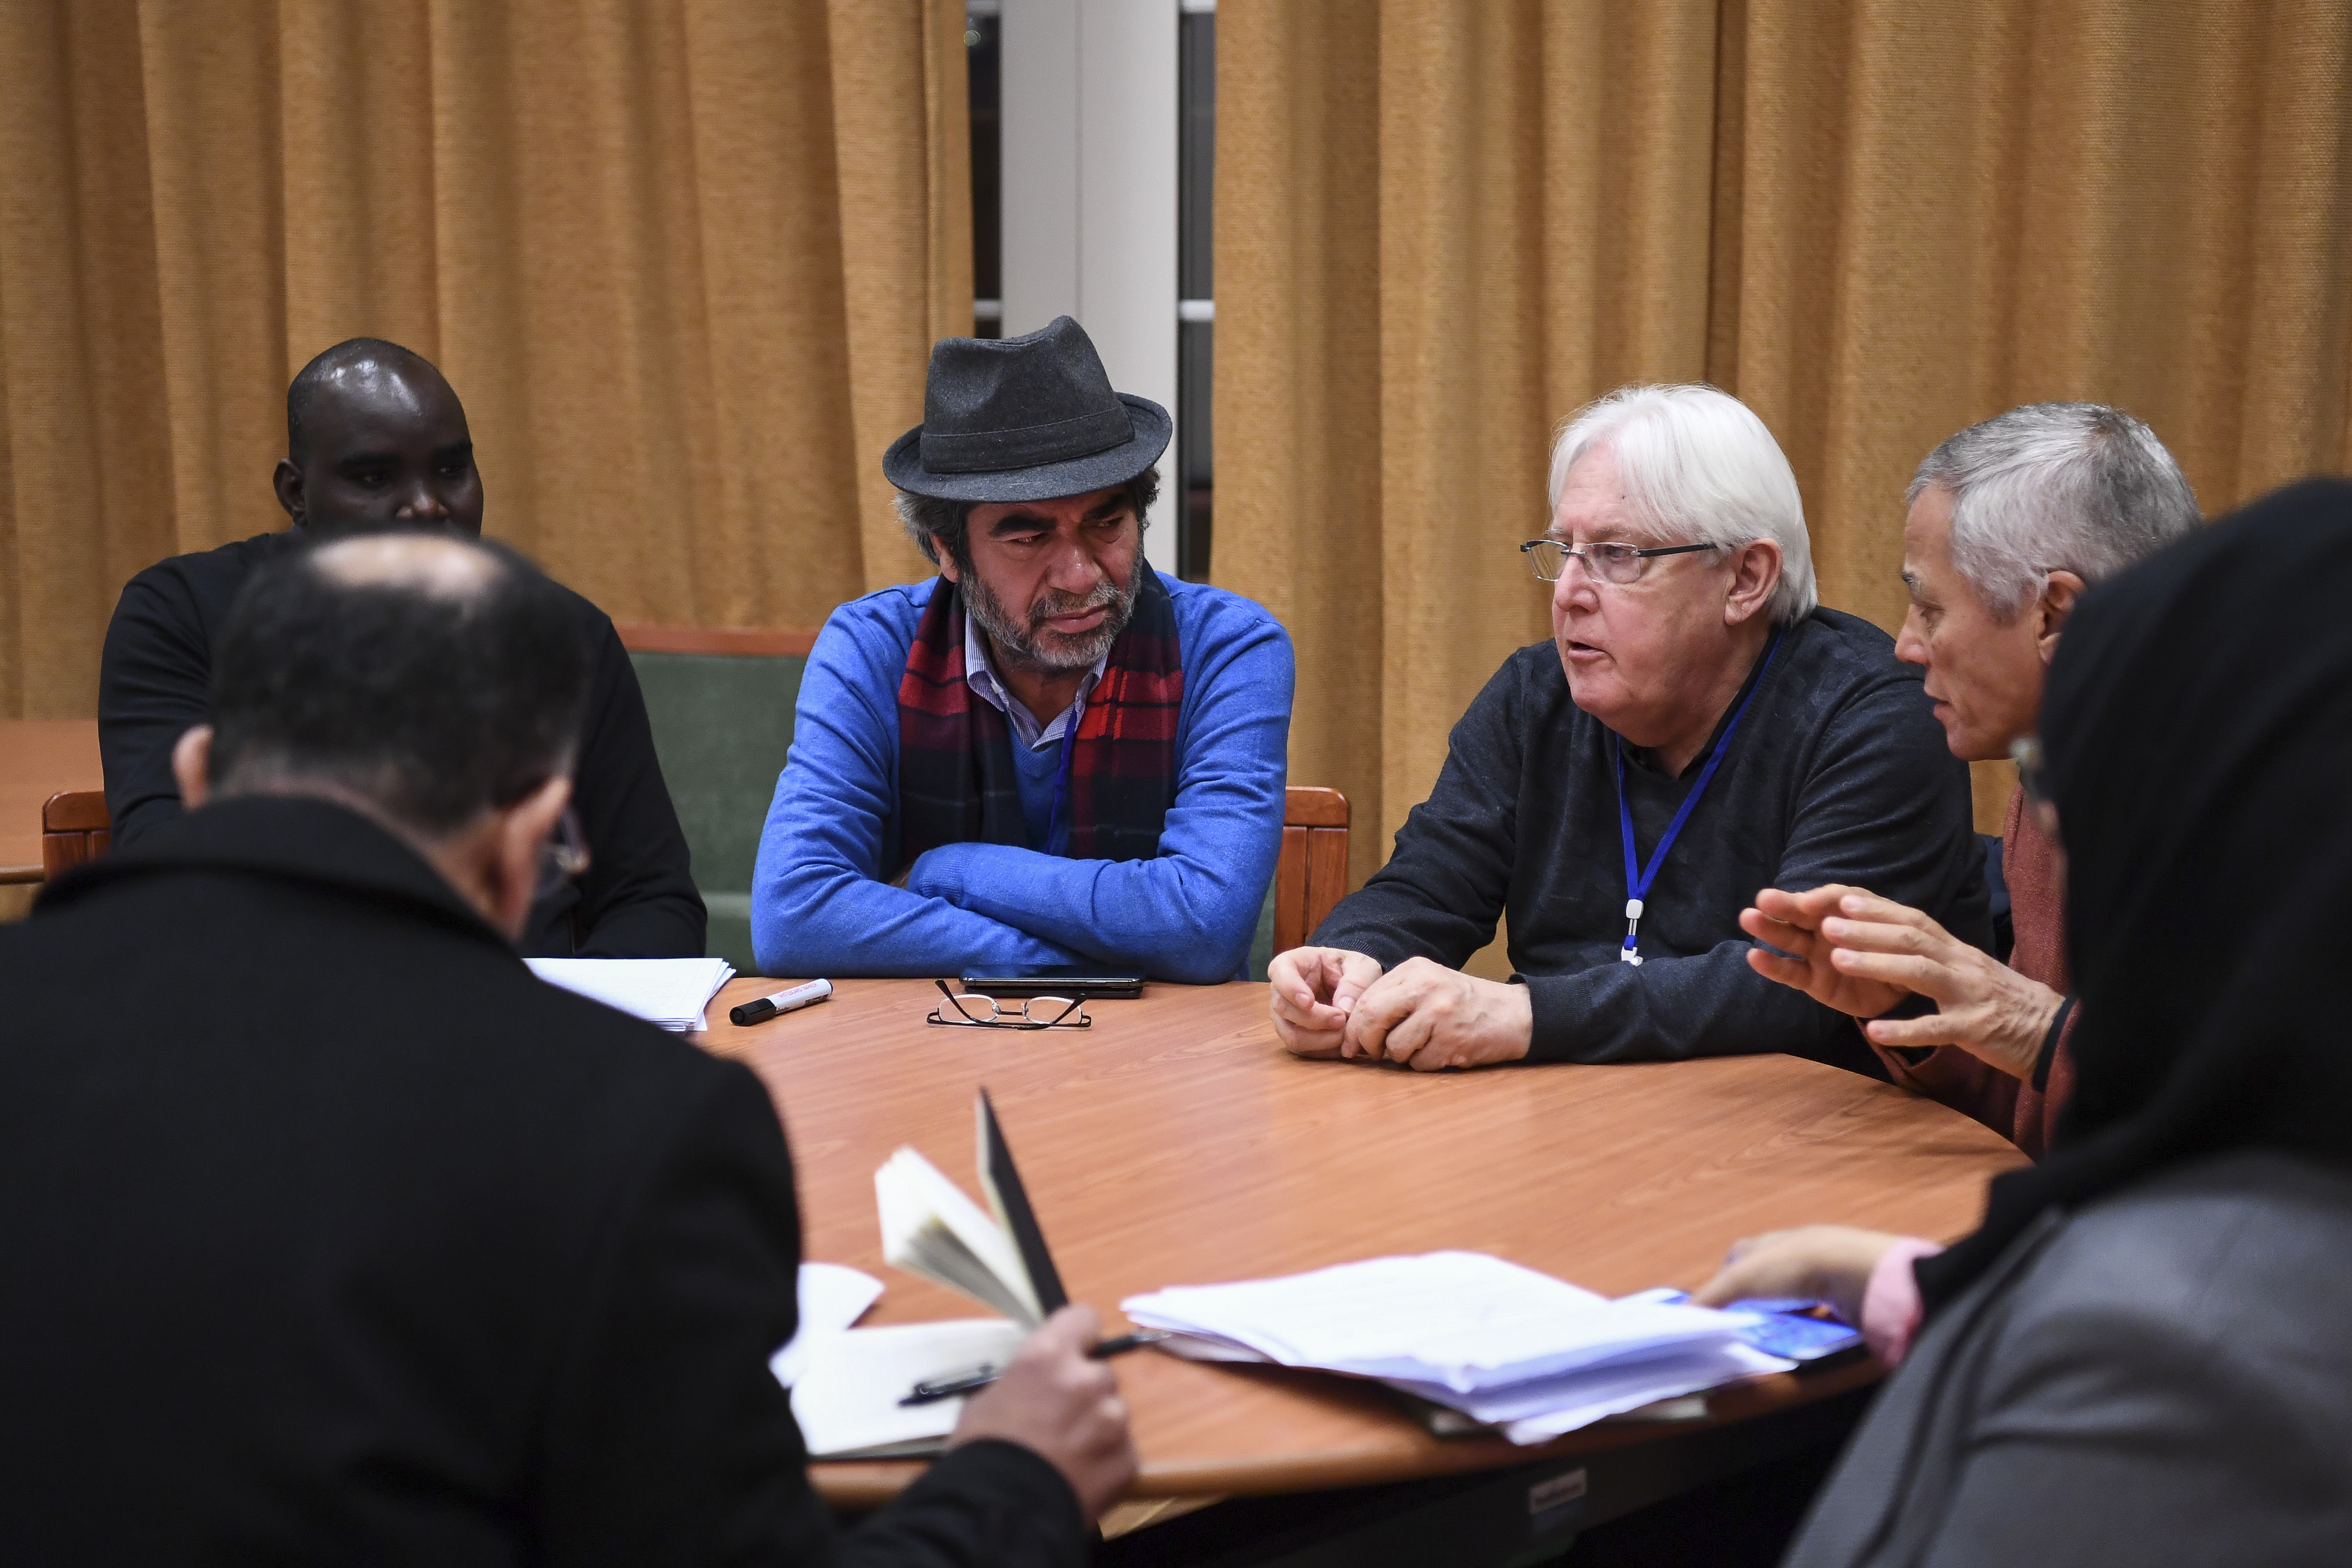 U.N. special envoy to Yemen Martin Griffiths, third right, takes part in a work group with a member of a Yemeni government's delegation, Abdulaziz Jabari, not pictured, and with a rebel delegation member Salim al-Moughaless, not pictured, as part of ...